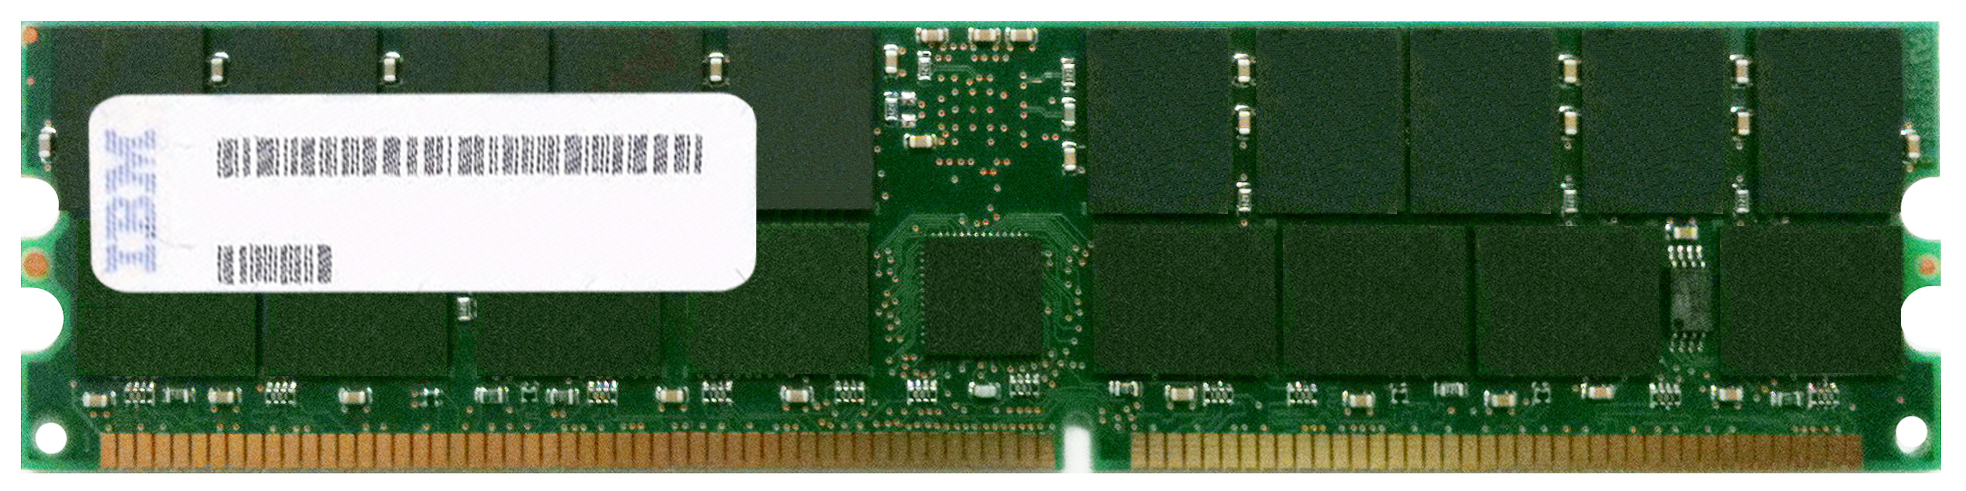 IBM Chipkill 4GB Kit (4 X 1GB) PC2-4200 DDR2-533MHz ECC Registered CL4 276-Pin DIMM Memory Mfr P/n 9117-7893